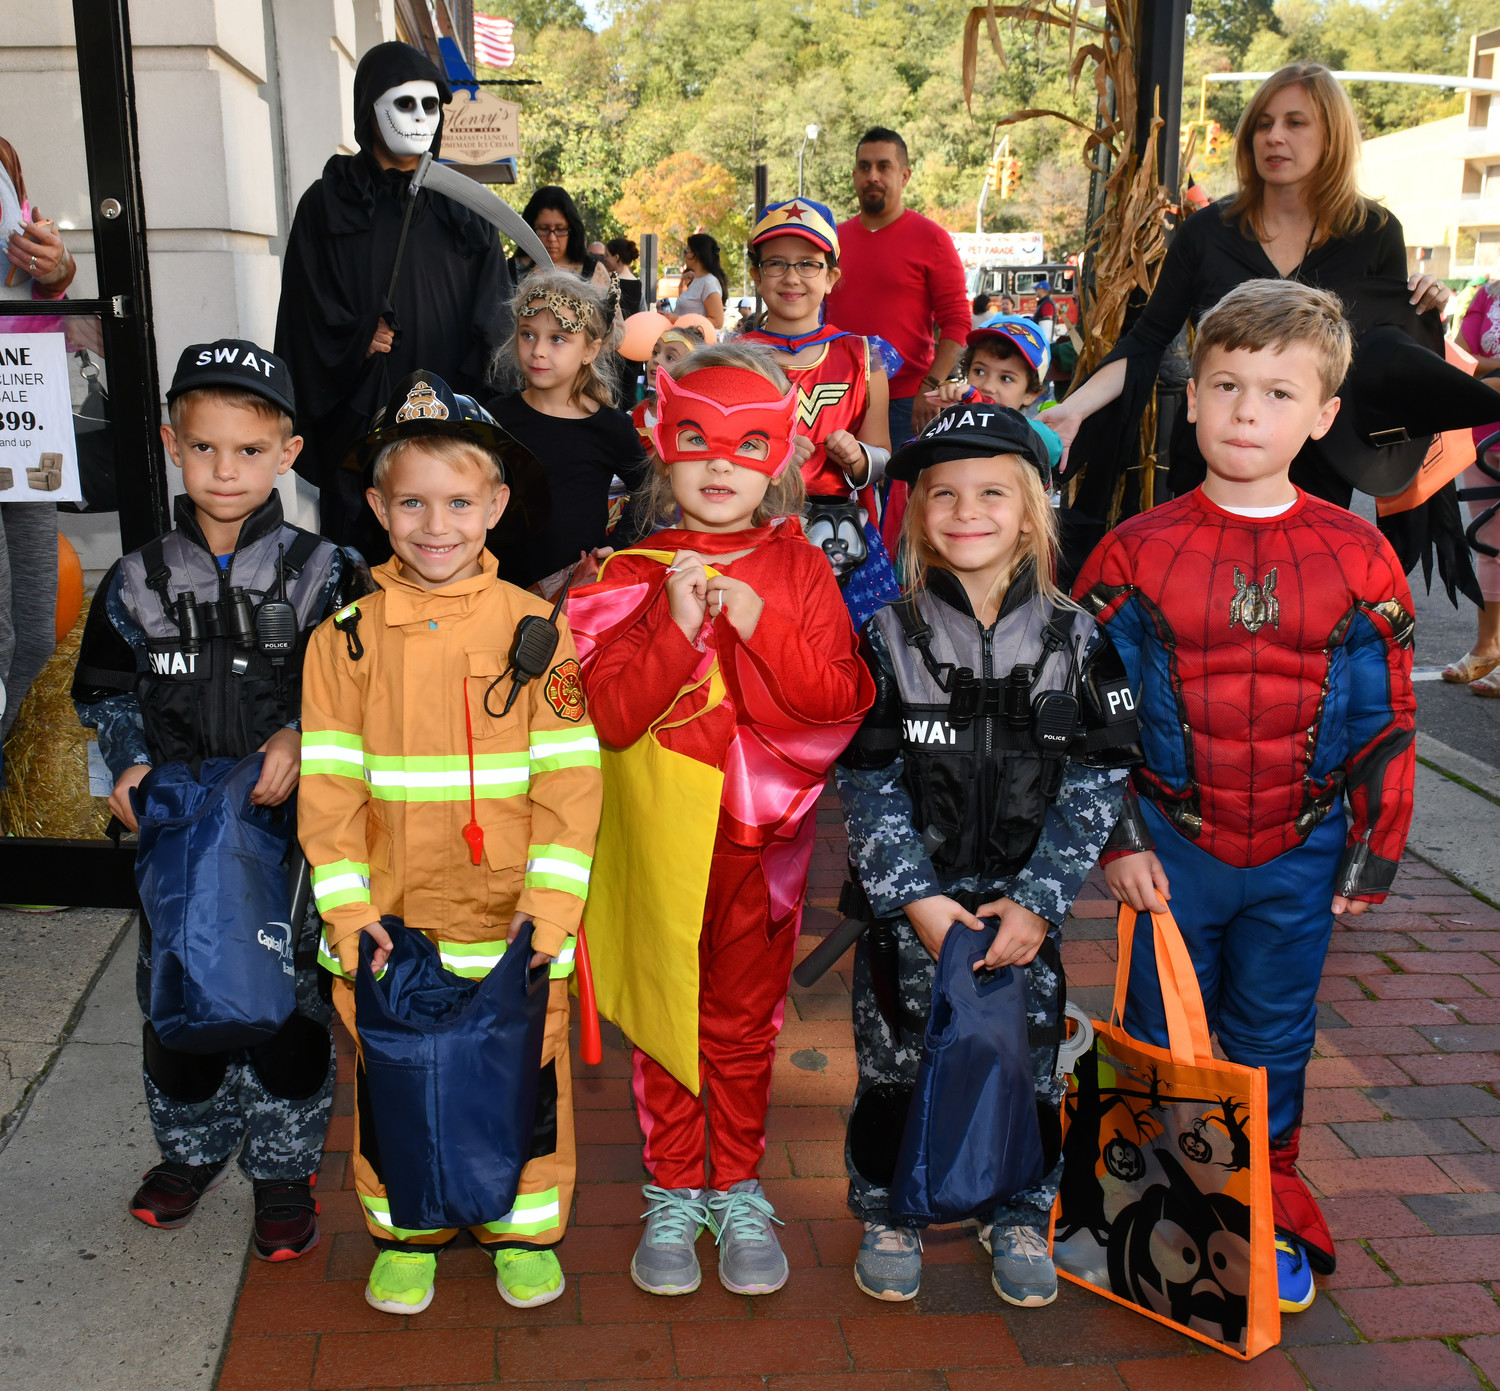 A group of young heroes discovered that it was fun to dress up as both real and comic book heroes for Halloween.